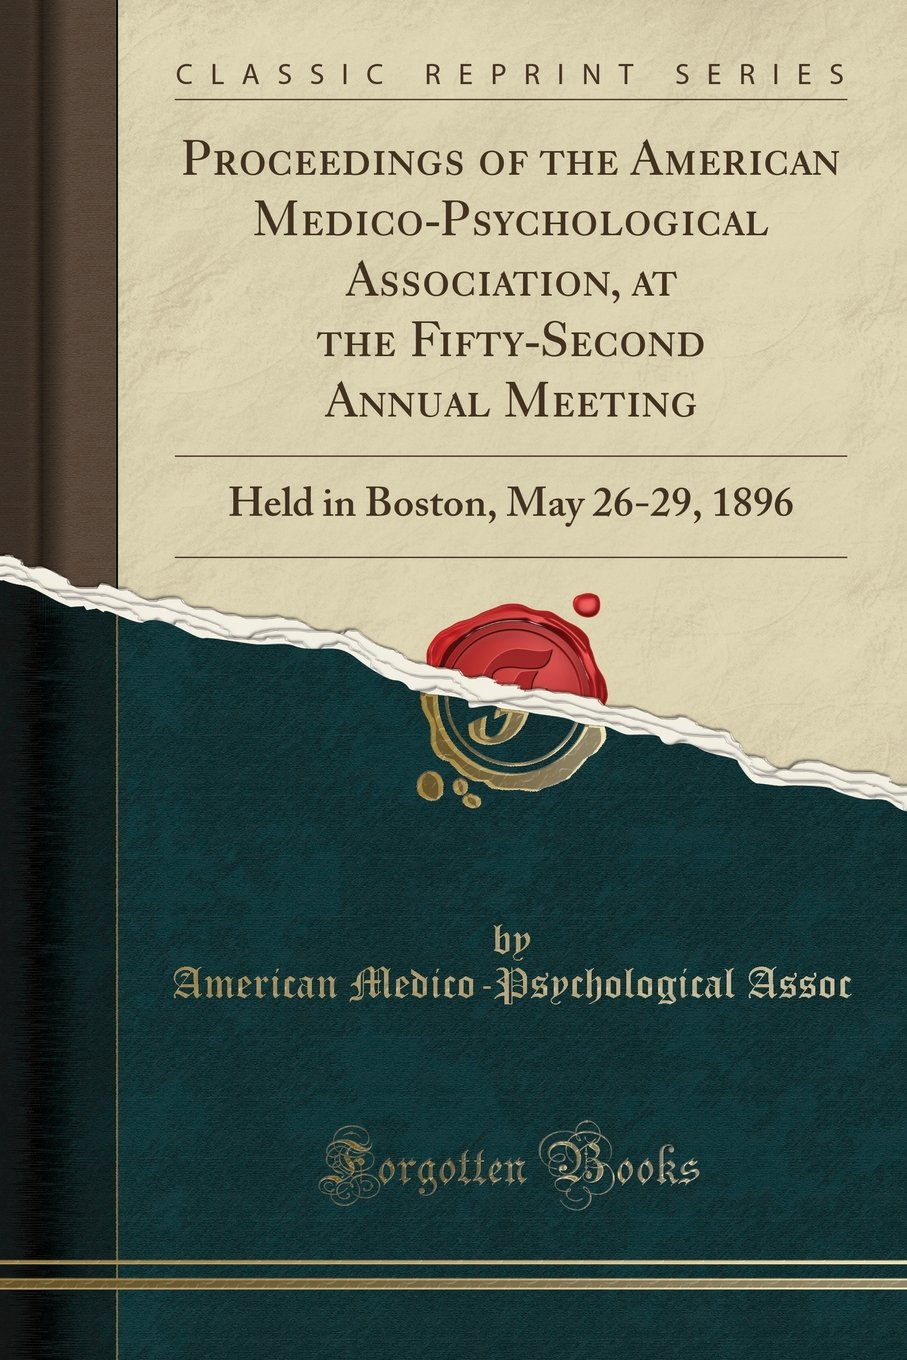 Read Online Proceedings of the American Medico-Psychological Association, at the Fifty-Second Annual Meeting: Held in Boston, May 26-29, 1896 (Classic Reprint) ebook